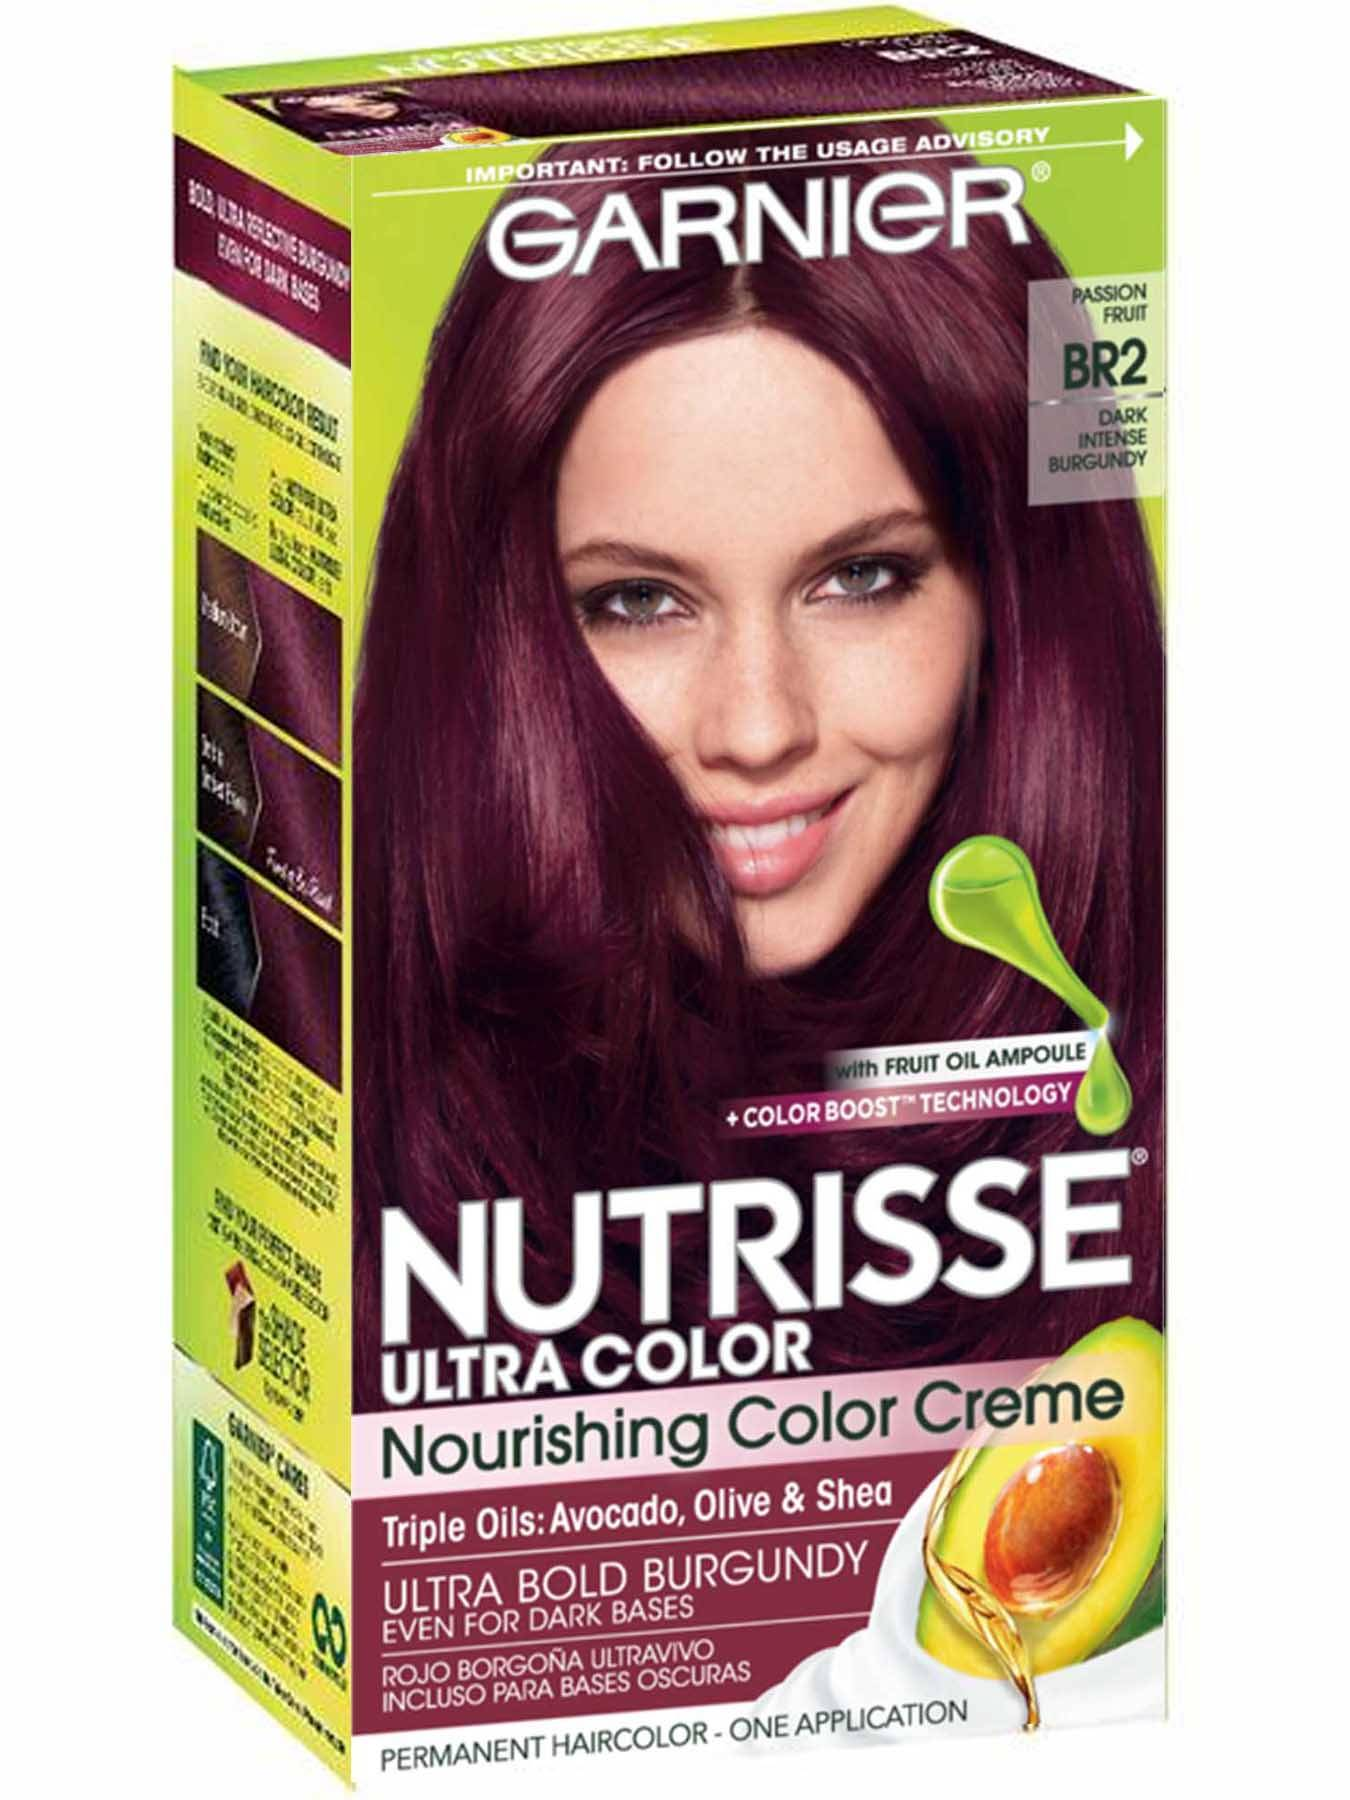 Nutrisse Ultra-Color - Dark Intense Burgundy Hair Color - Garnier